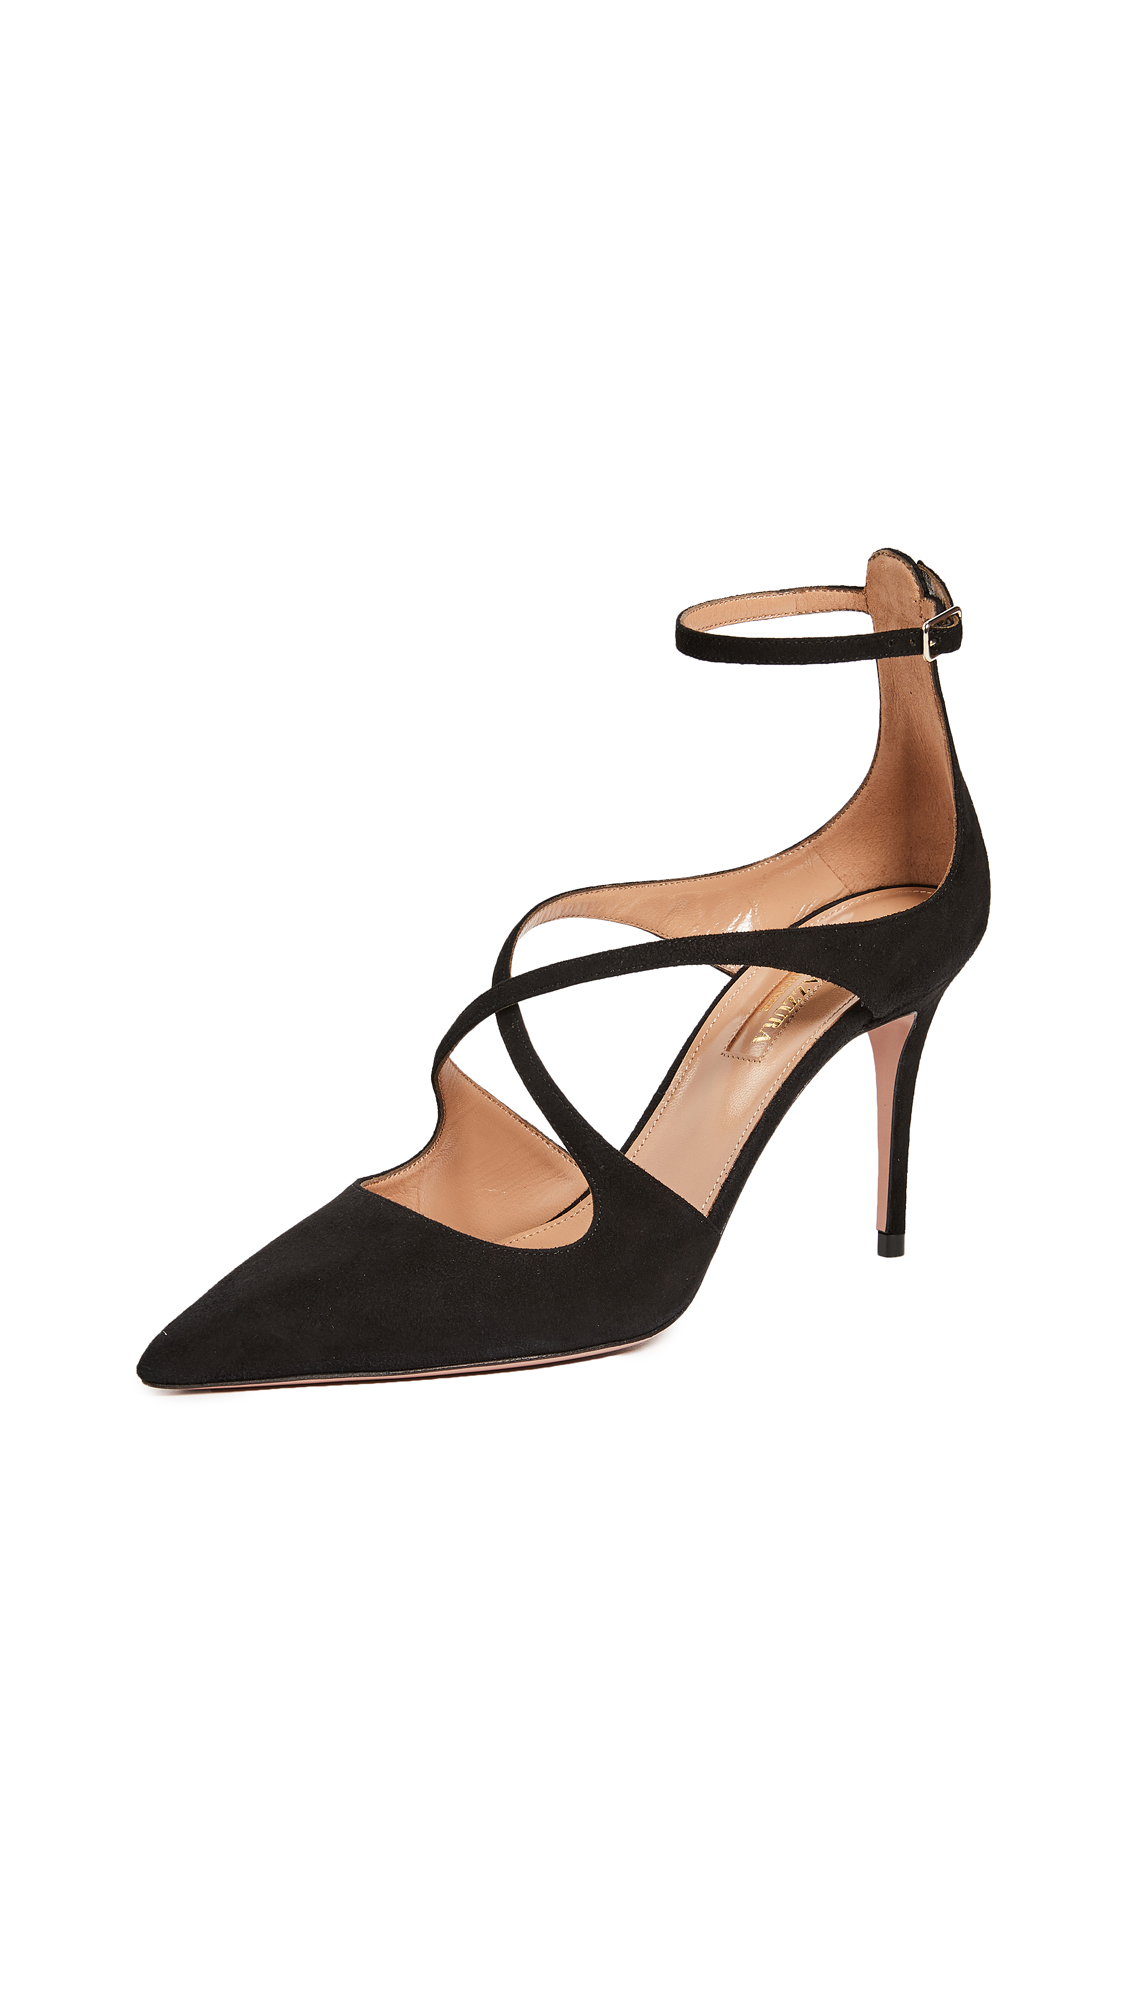 Aquazzura Viviana 85mm Pumps - Black